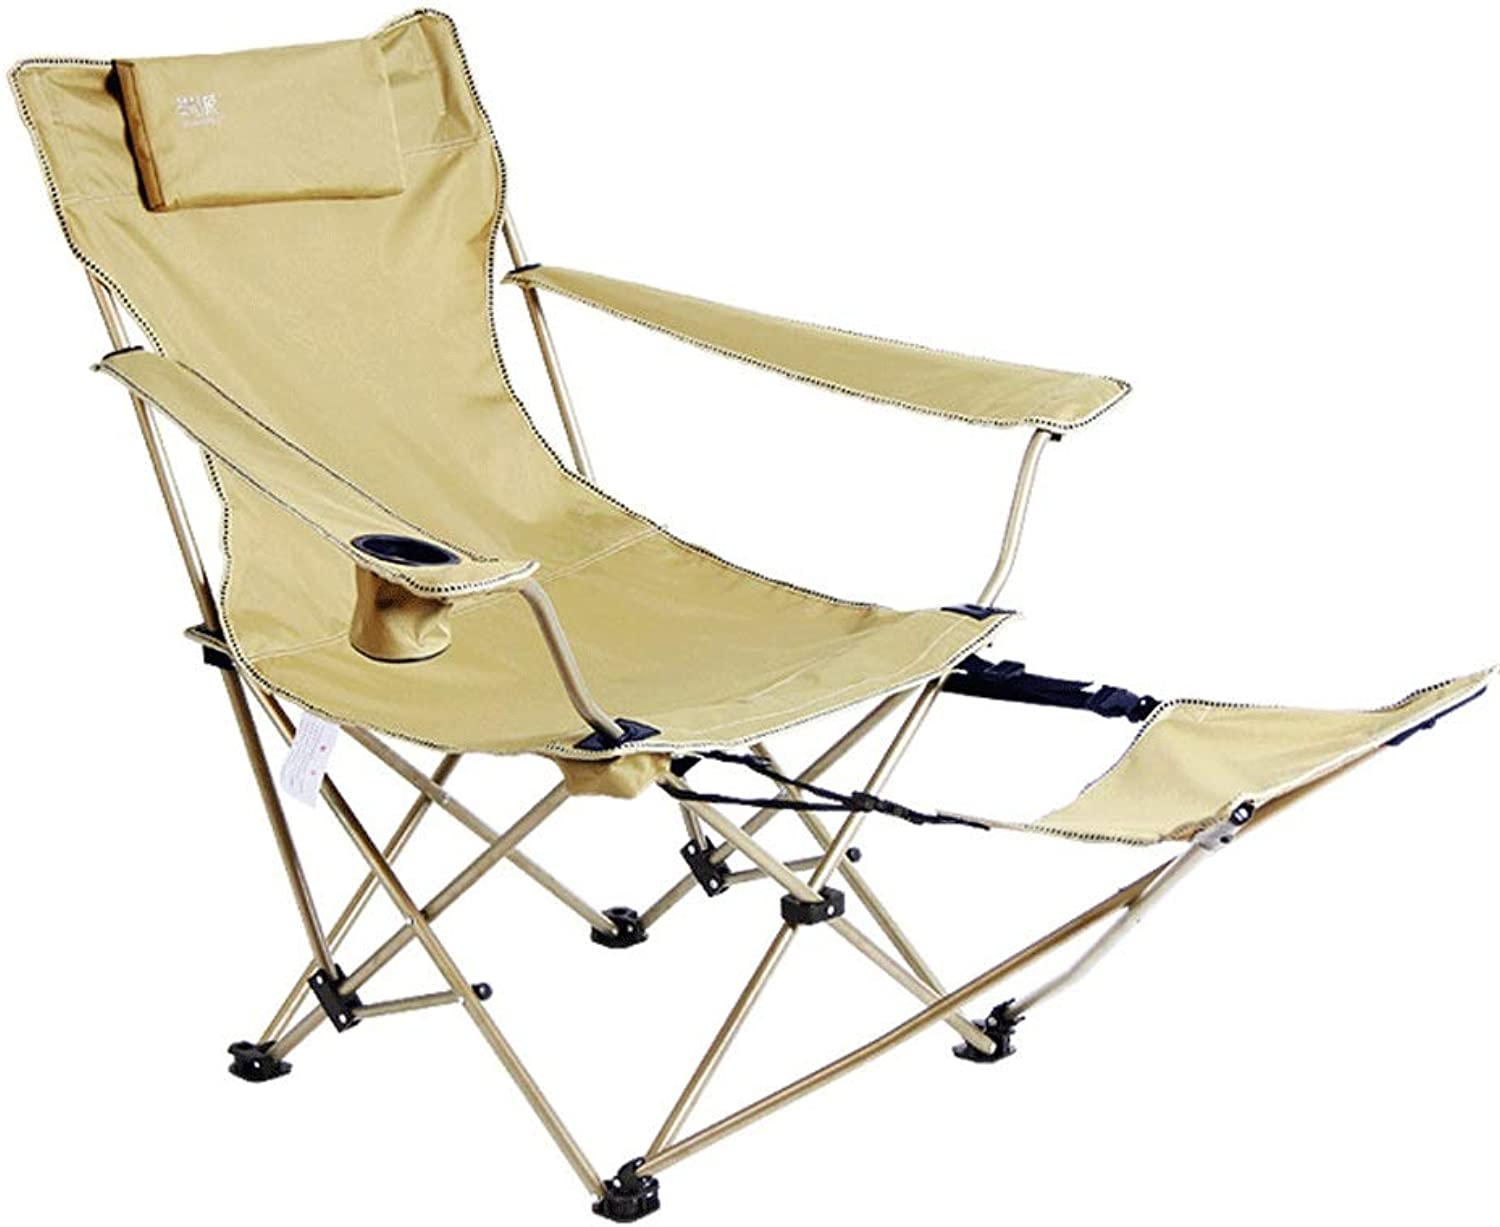 Multifunctional Folding Recliner Ultra Light Portable Camping Chair Casual Beach Chairs, Adjustable Armchair, Green Beige Can Bear 130kg (color   Green)